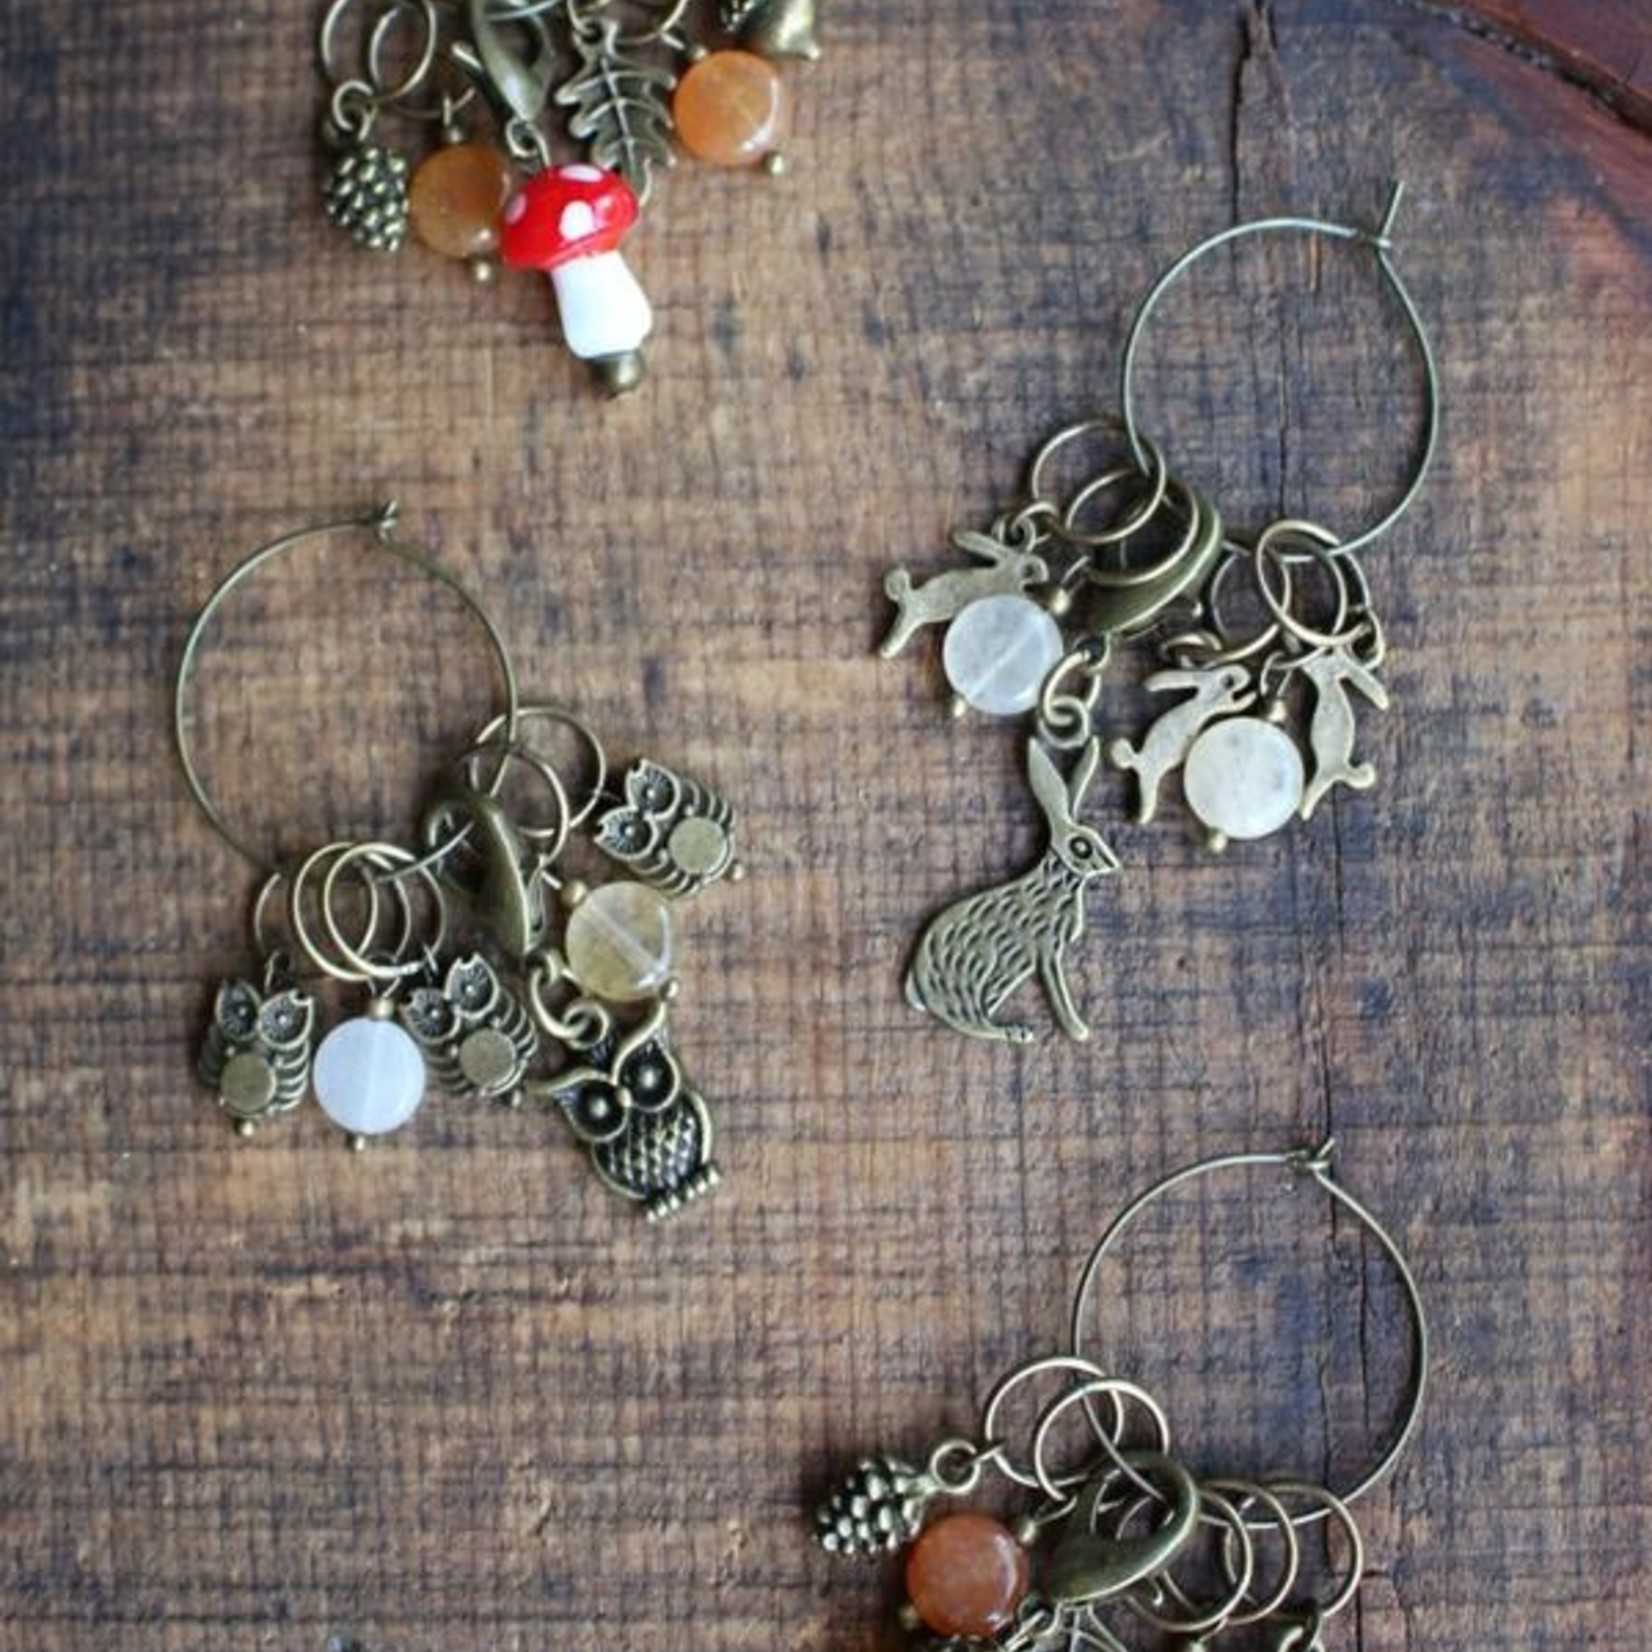 Wool & Wire Woodland Creatures Stitch Markers by Wool & Wire